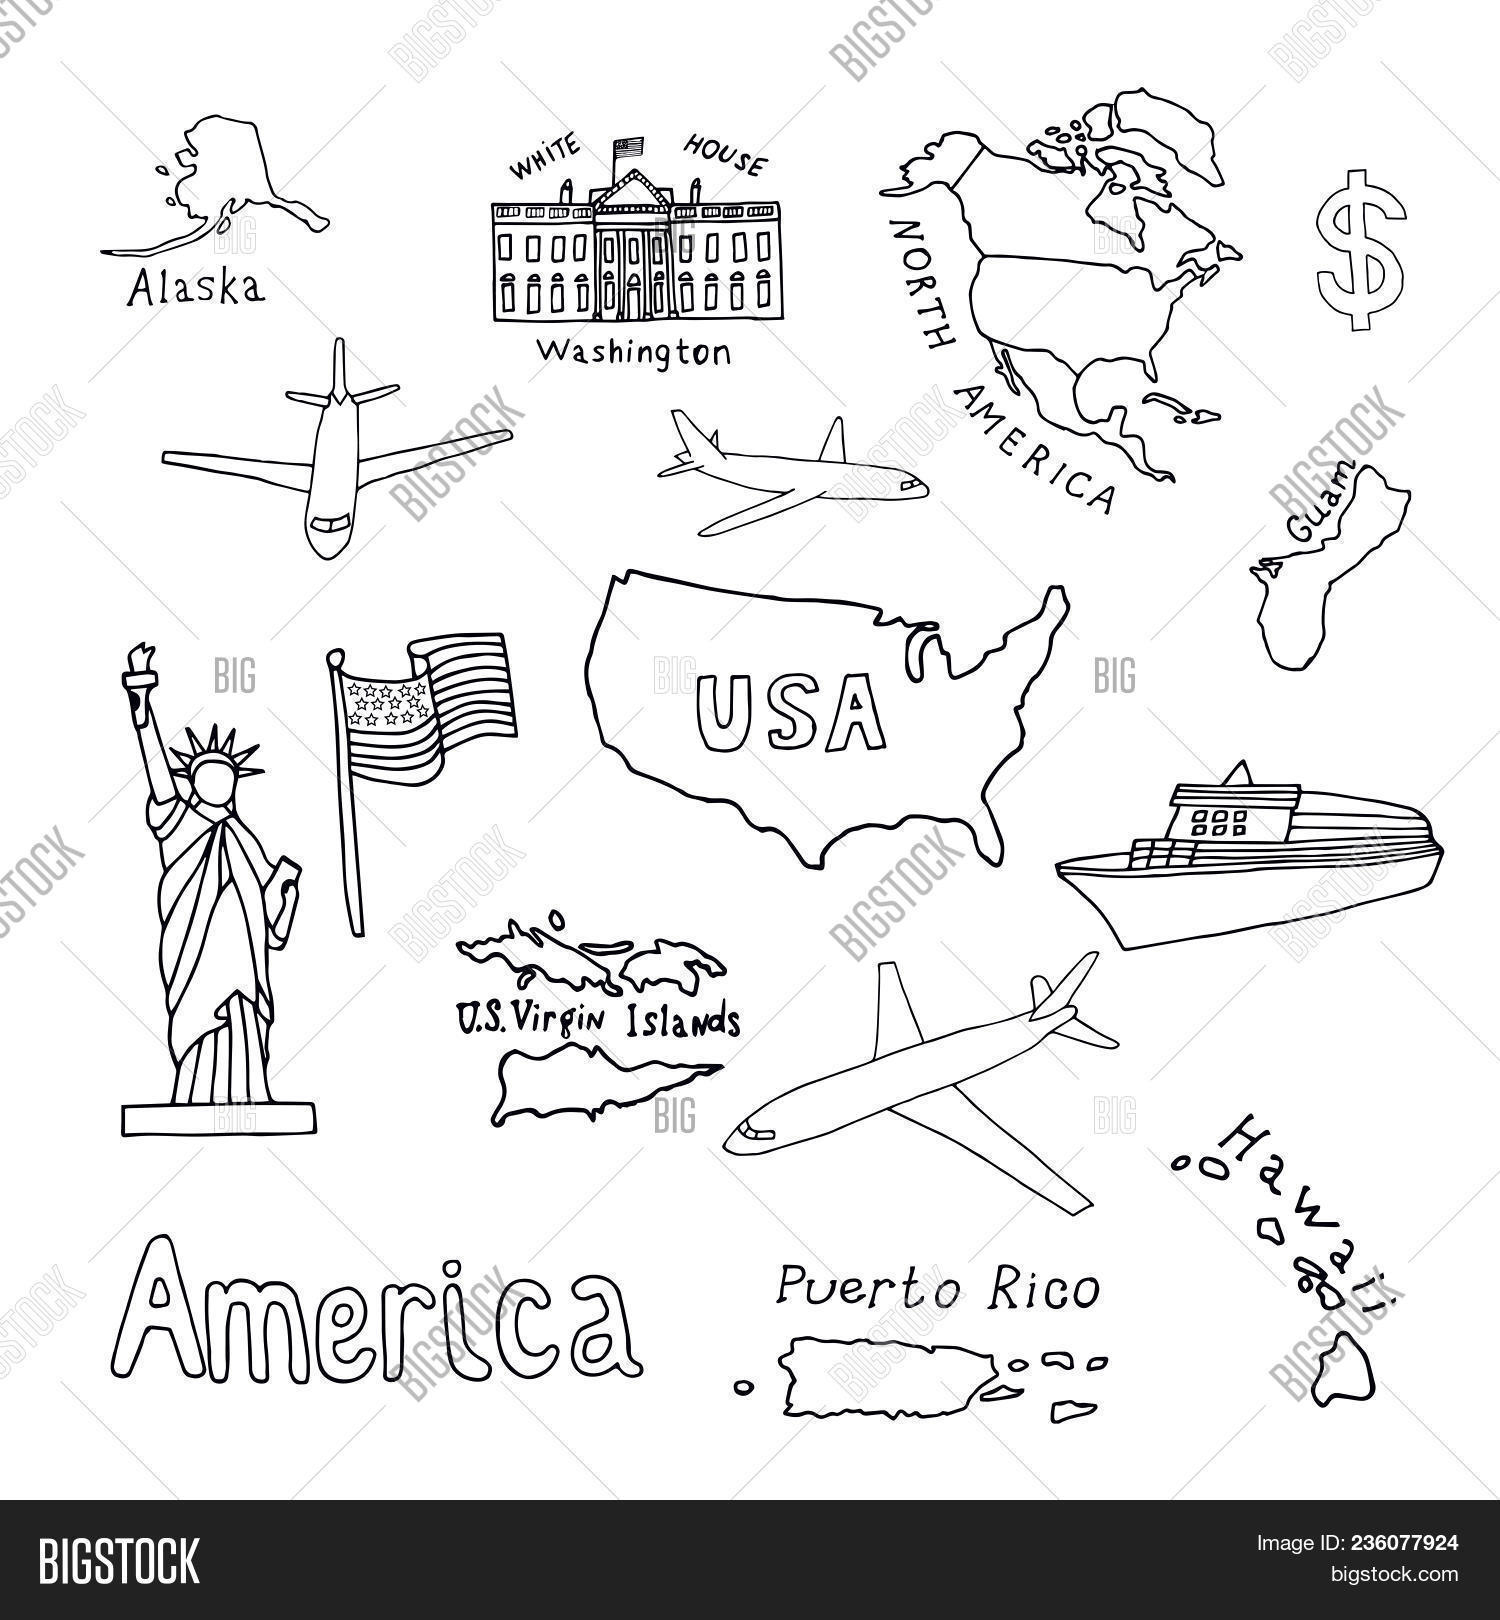 map united states vector photo free trial bigstock Us Map with Territories map of the united states of america and its territories north america alaska